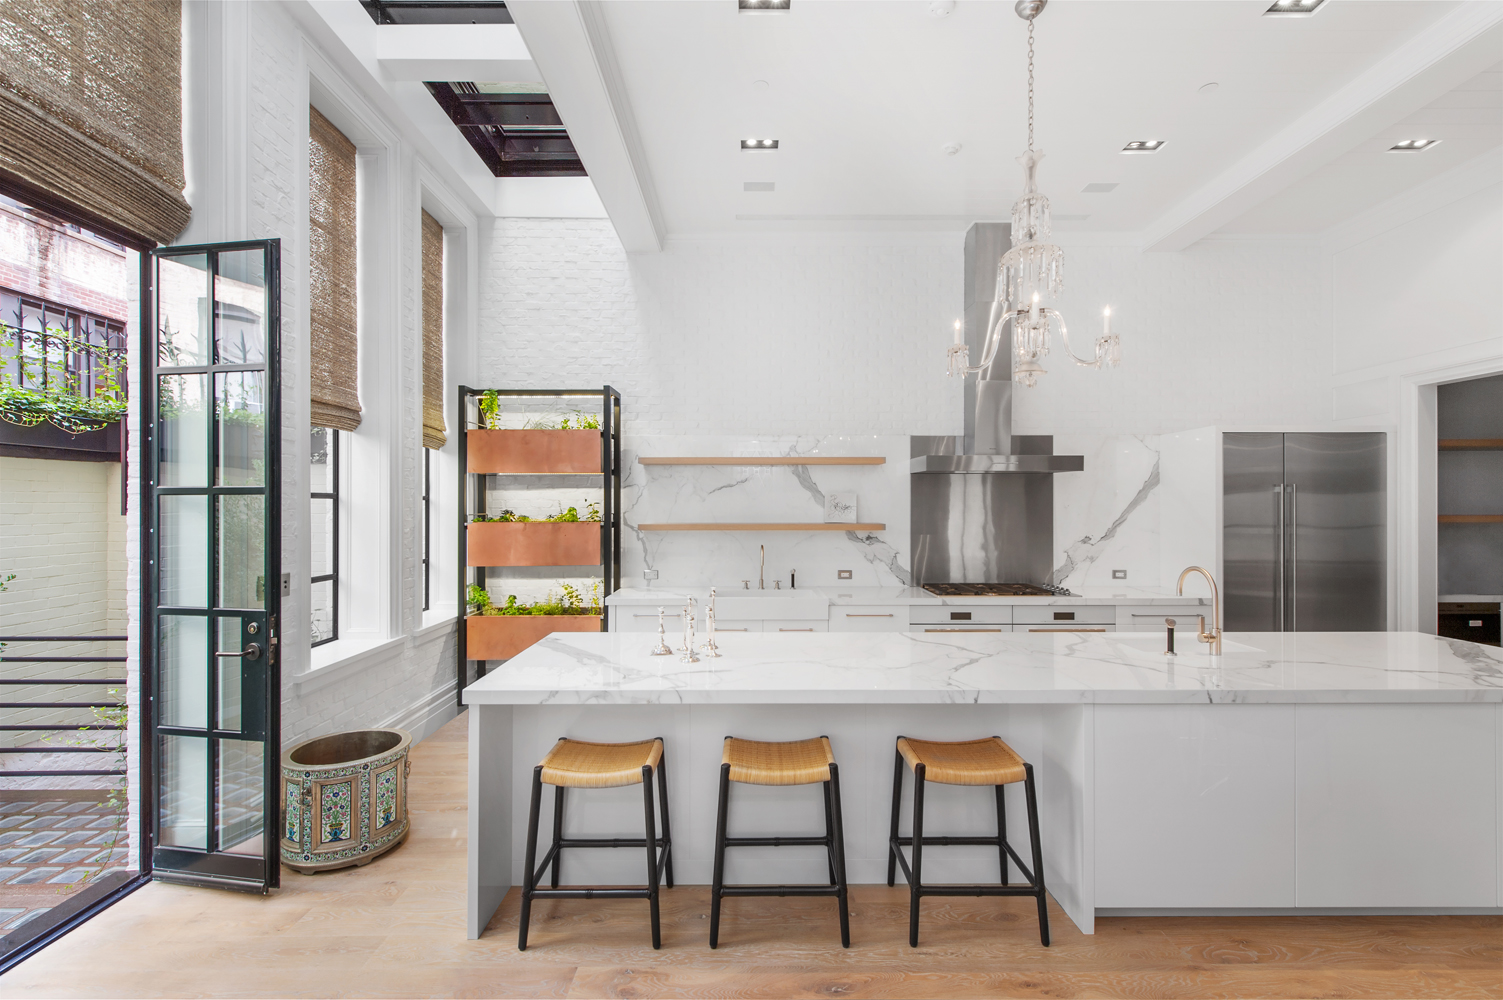 6-architecutral-shot-of-kitchen